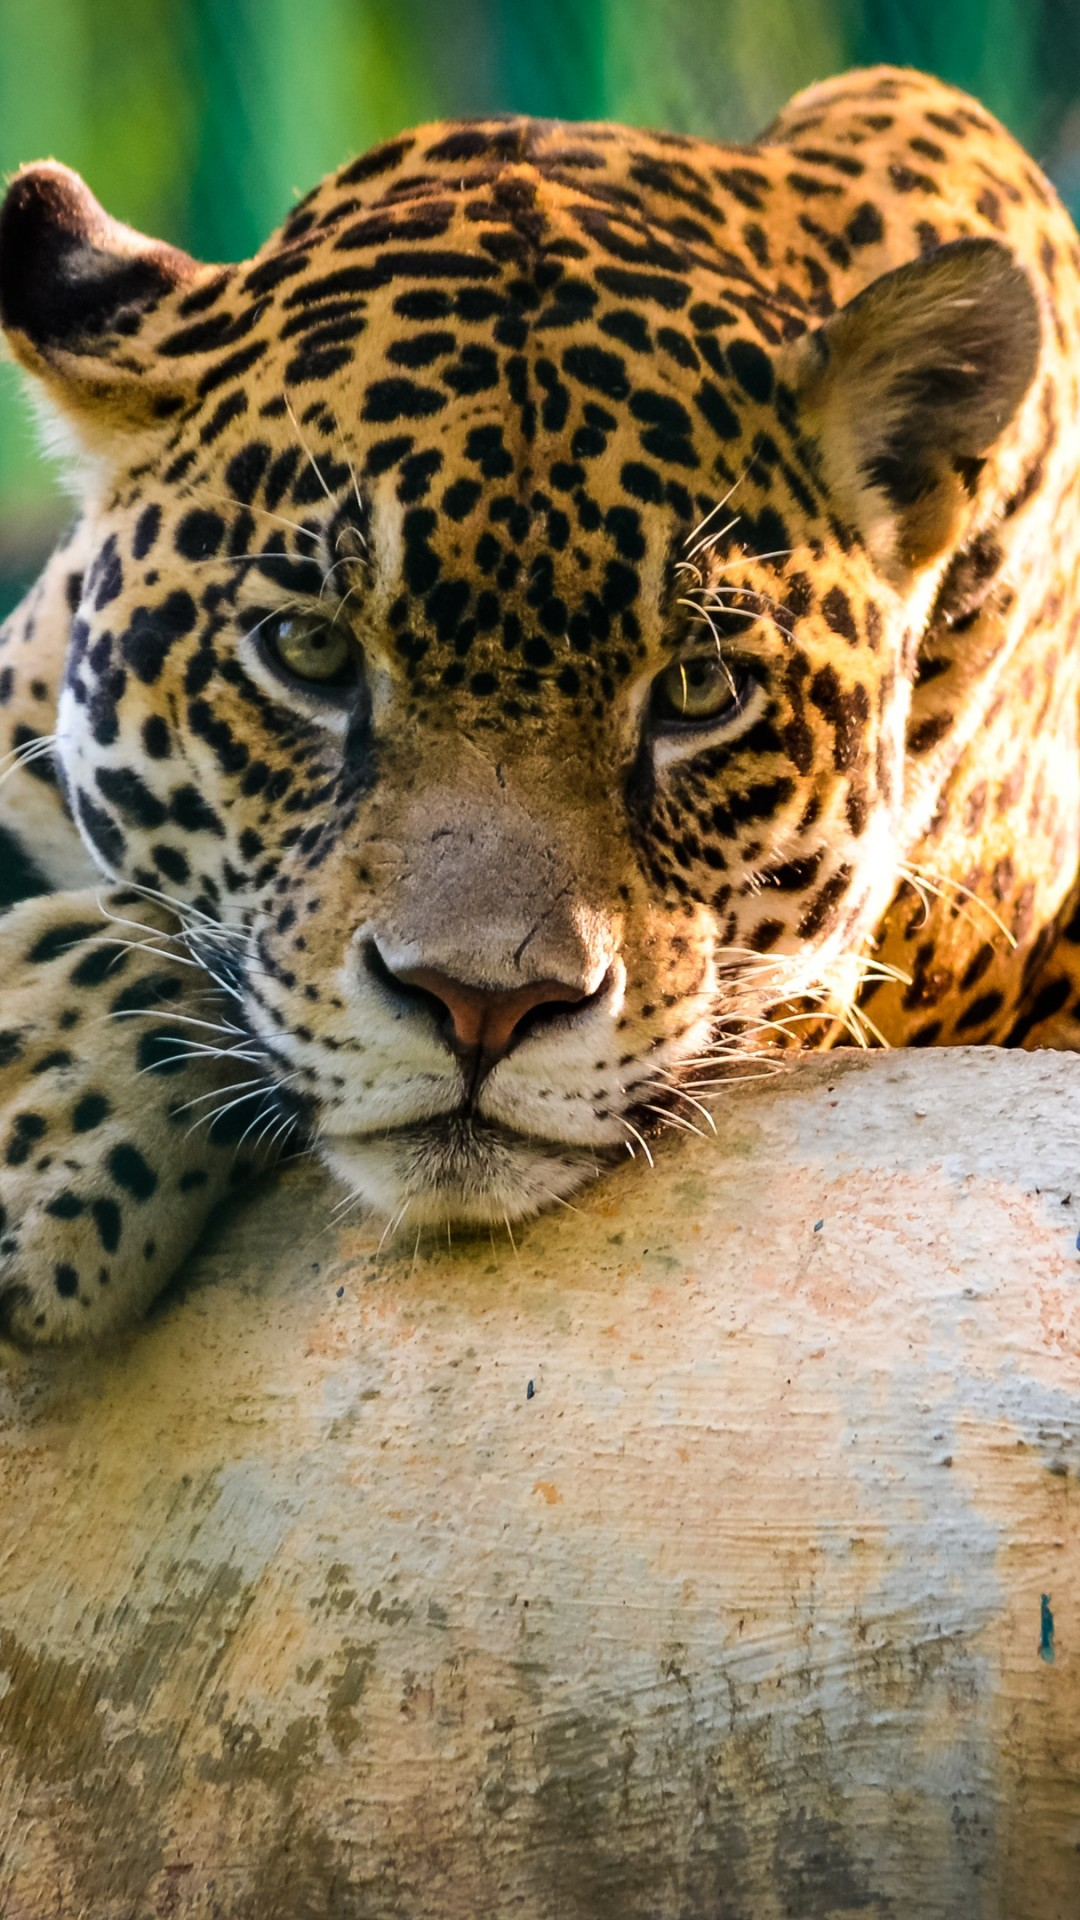 Wallpaper Jaguar Wild Cat Sad Face Animals 10303